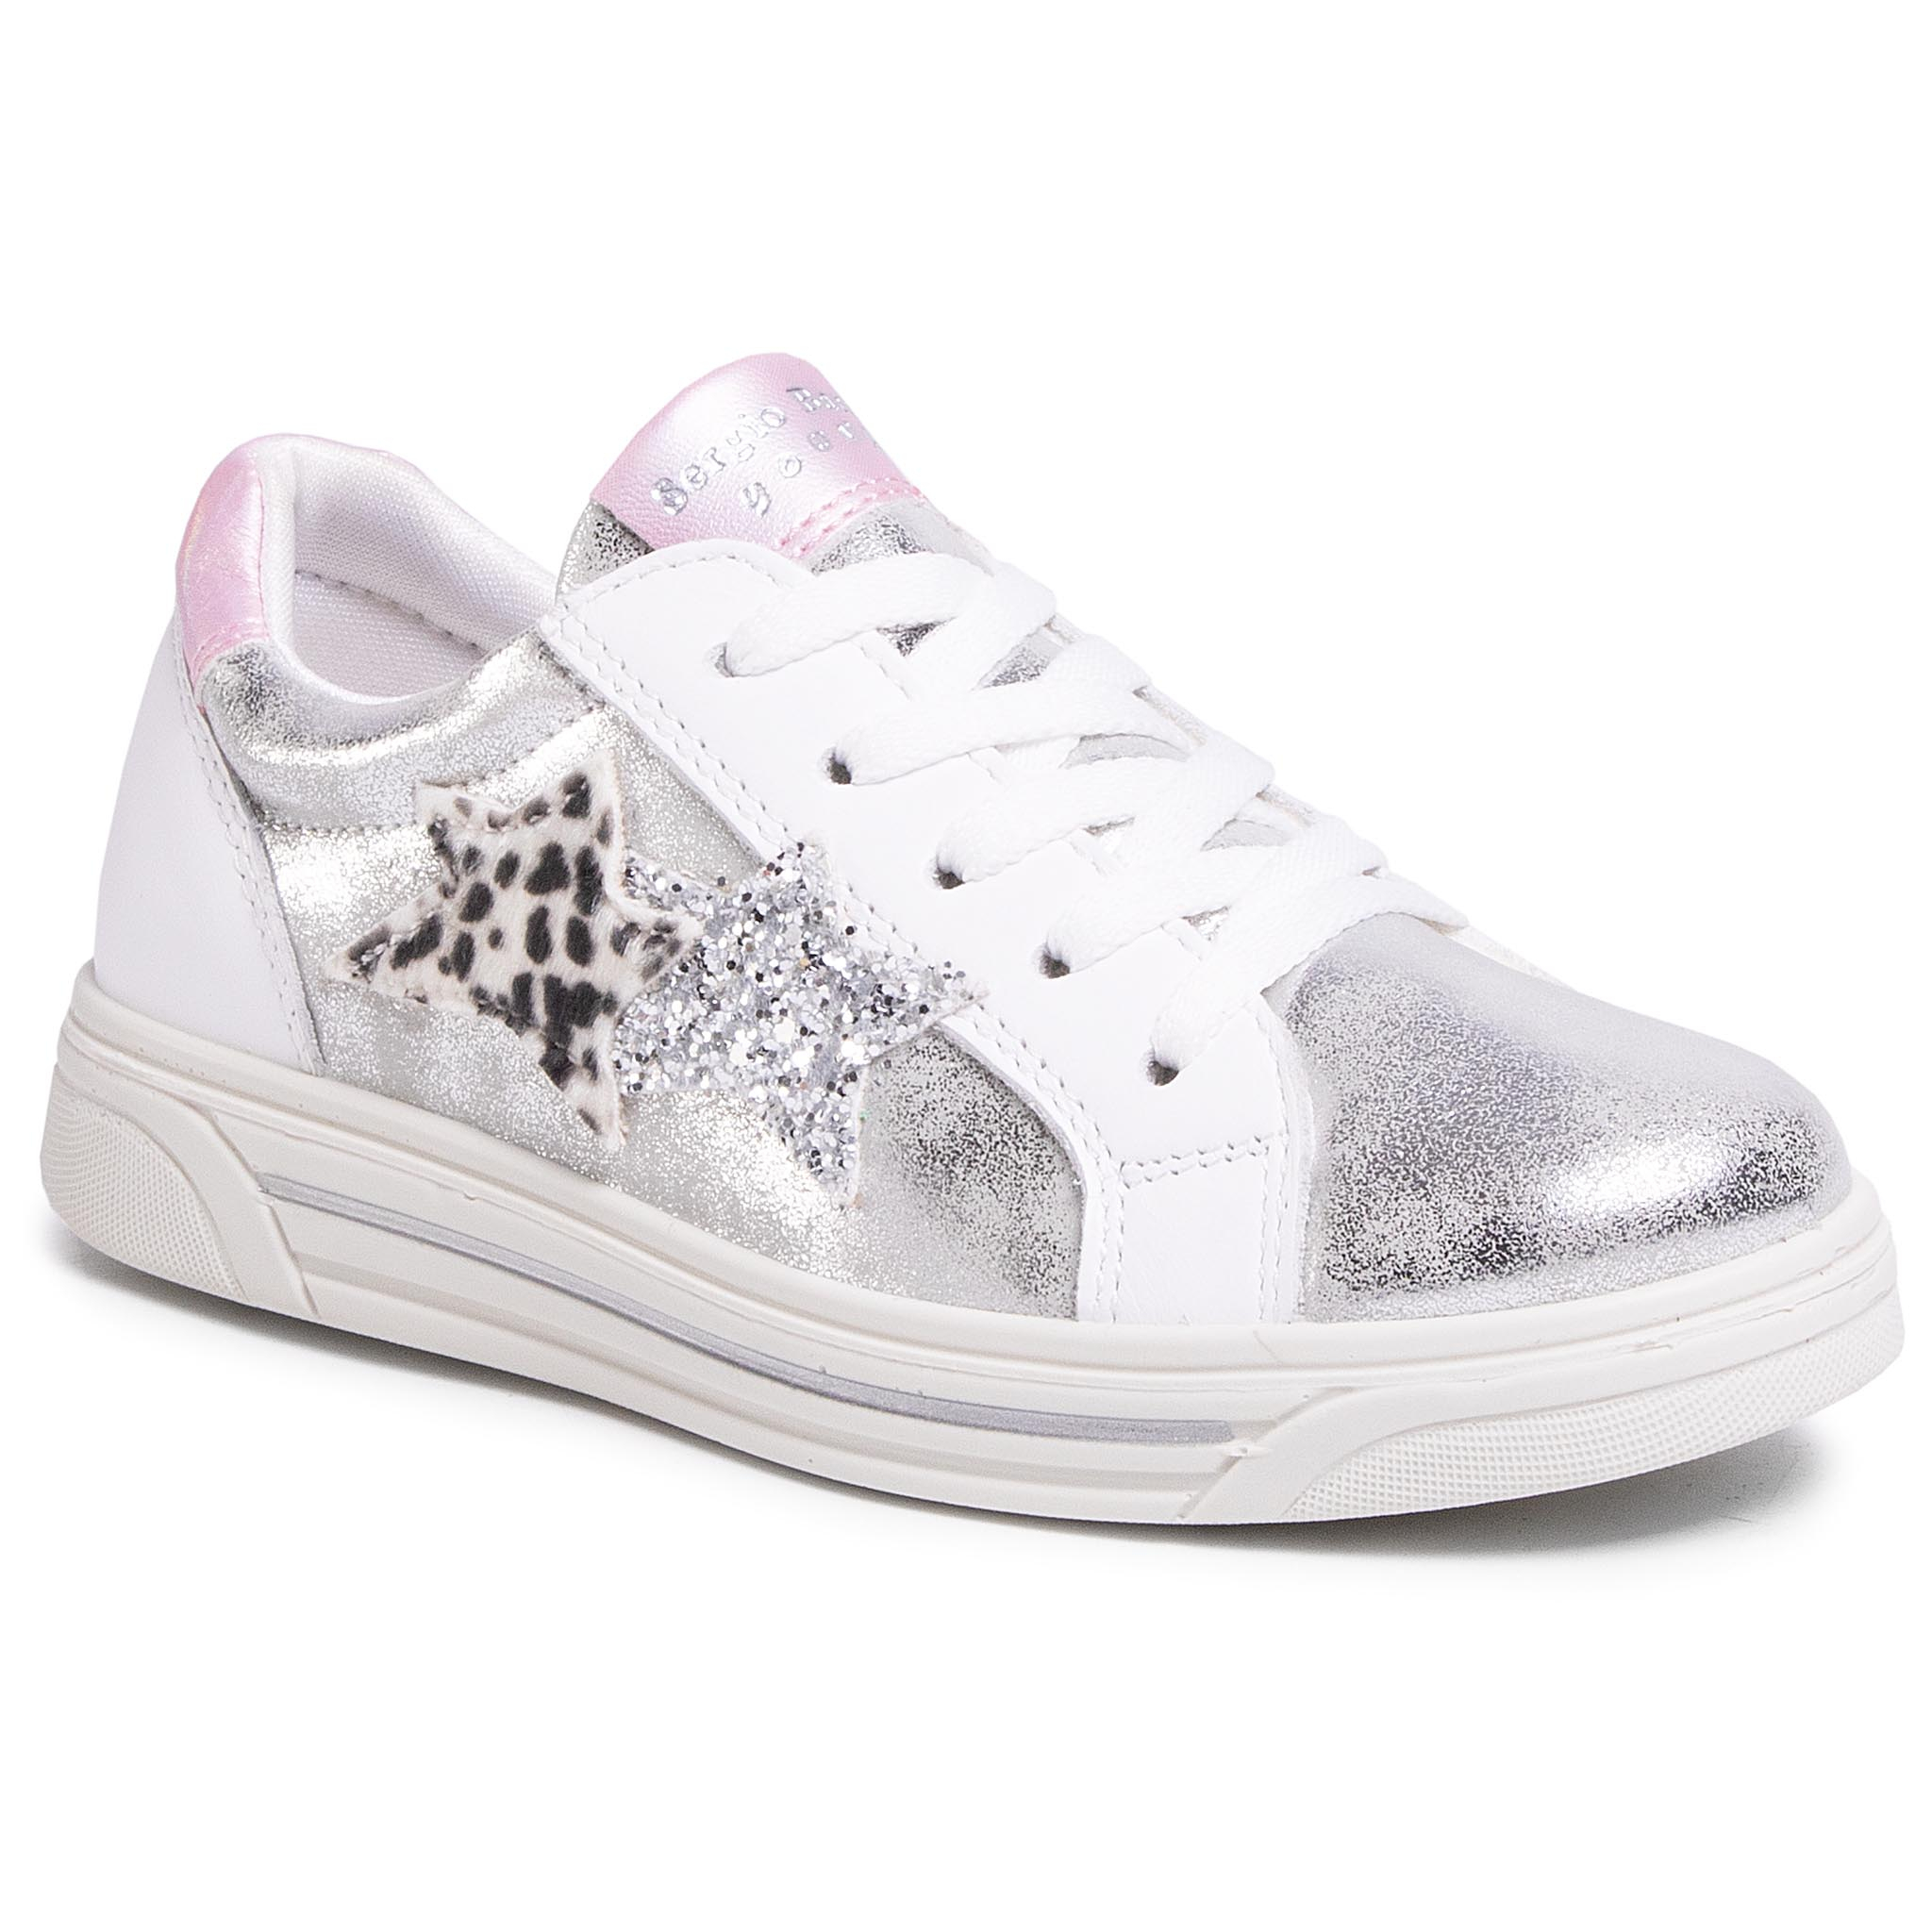 Sneakers SERGIO BARDI YOUNG - SBY-02-03-000039 624